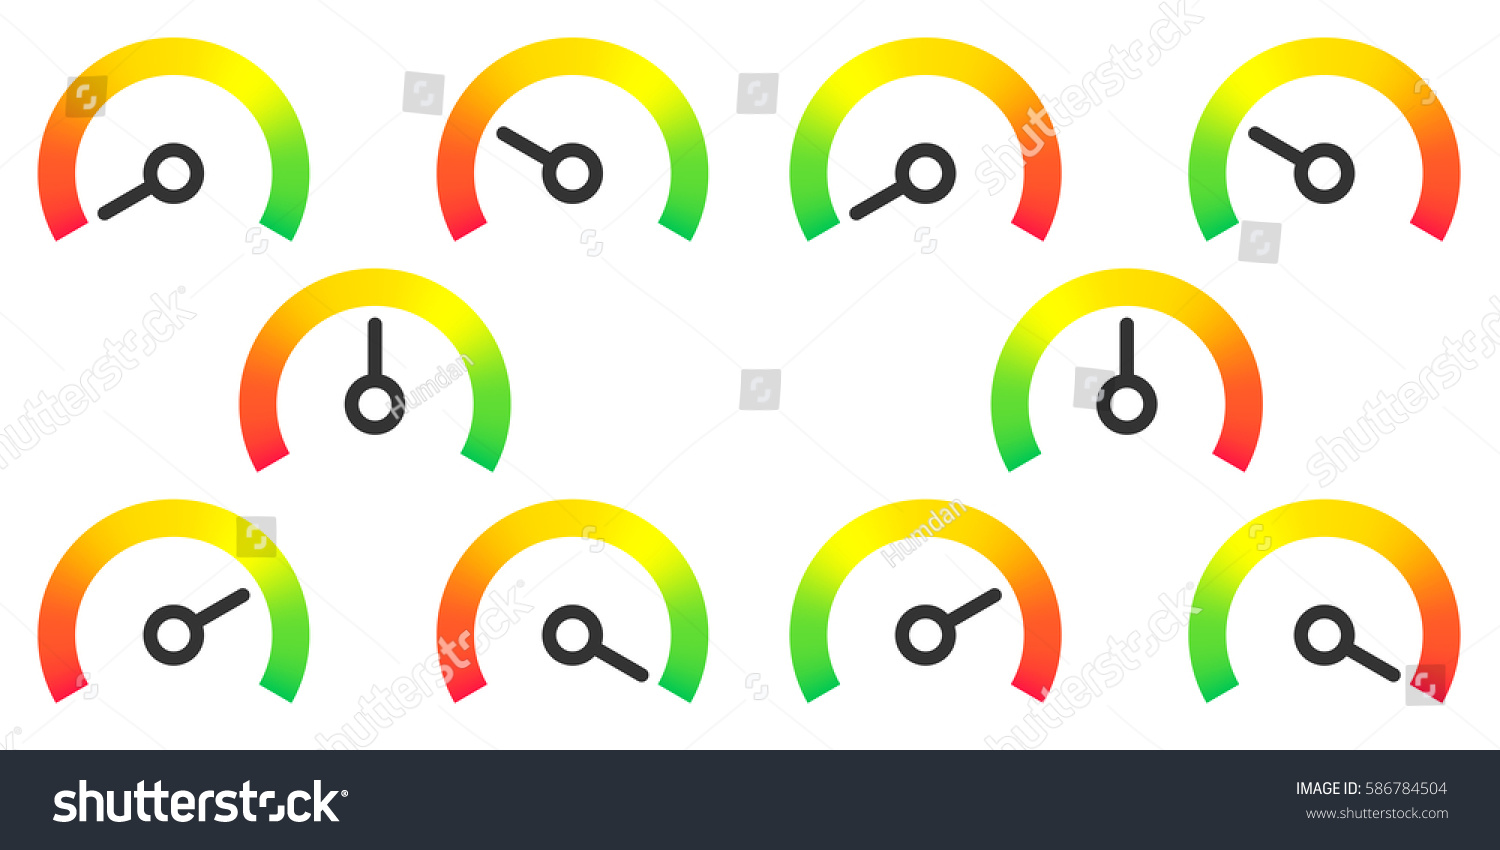 Meter Signs Infographic Gauge Element Red Stock Photo (Photo, Vector ...